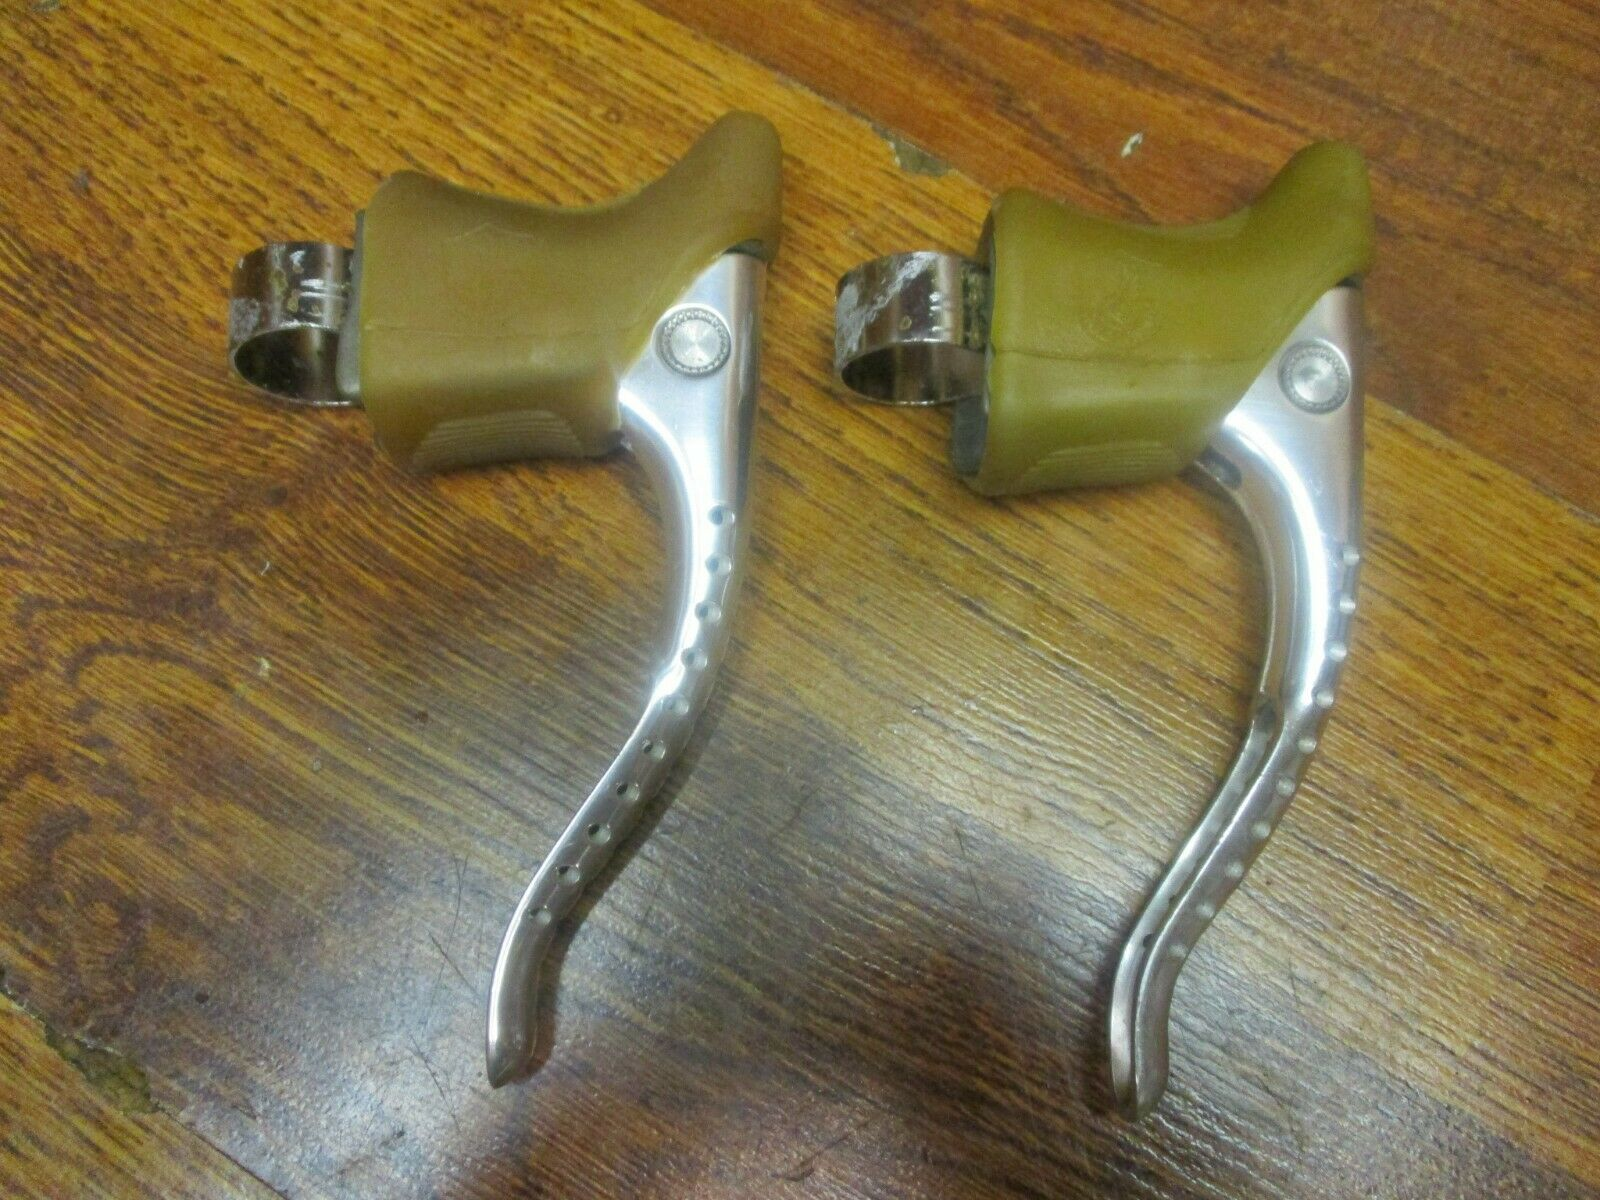 NOS VINTAGE CAMPAGNOLO  SUPER RECORD DRILLIUM BRAKE LEVERS GUM HOODS  credit guarantee